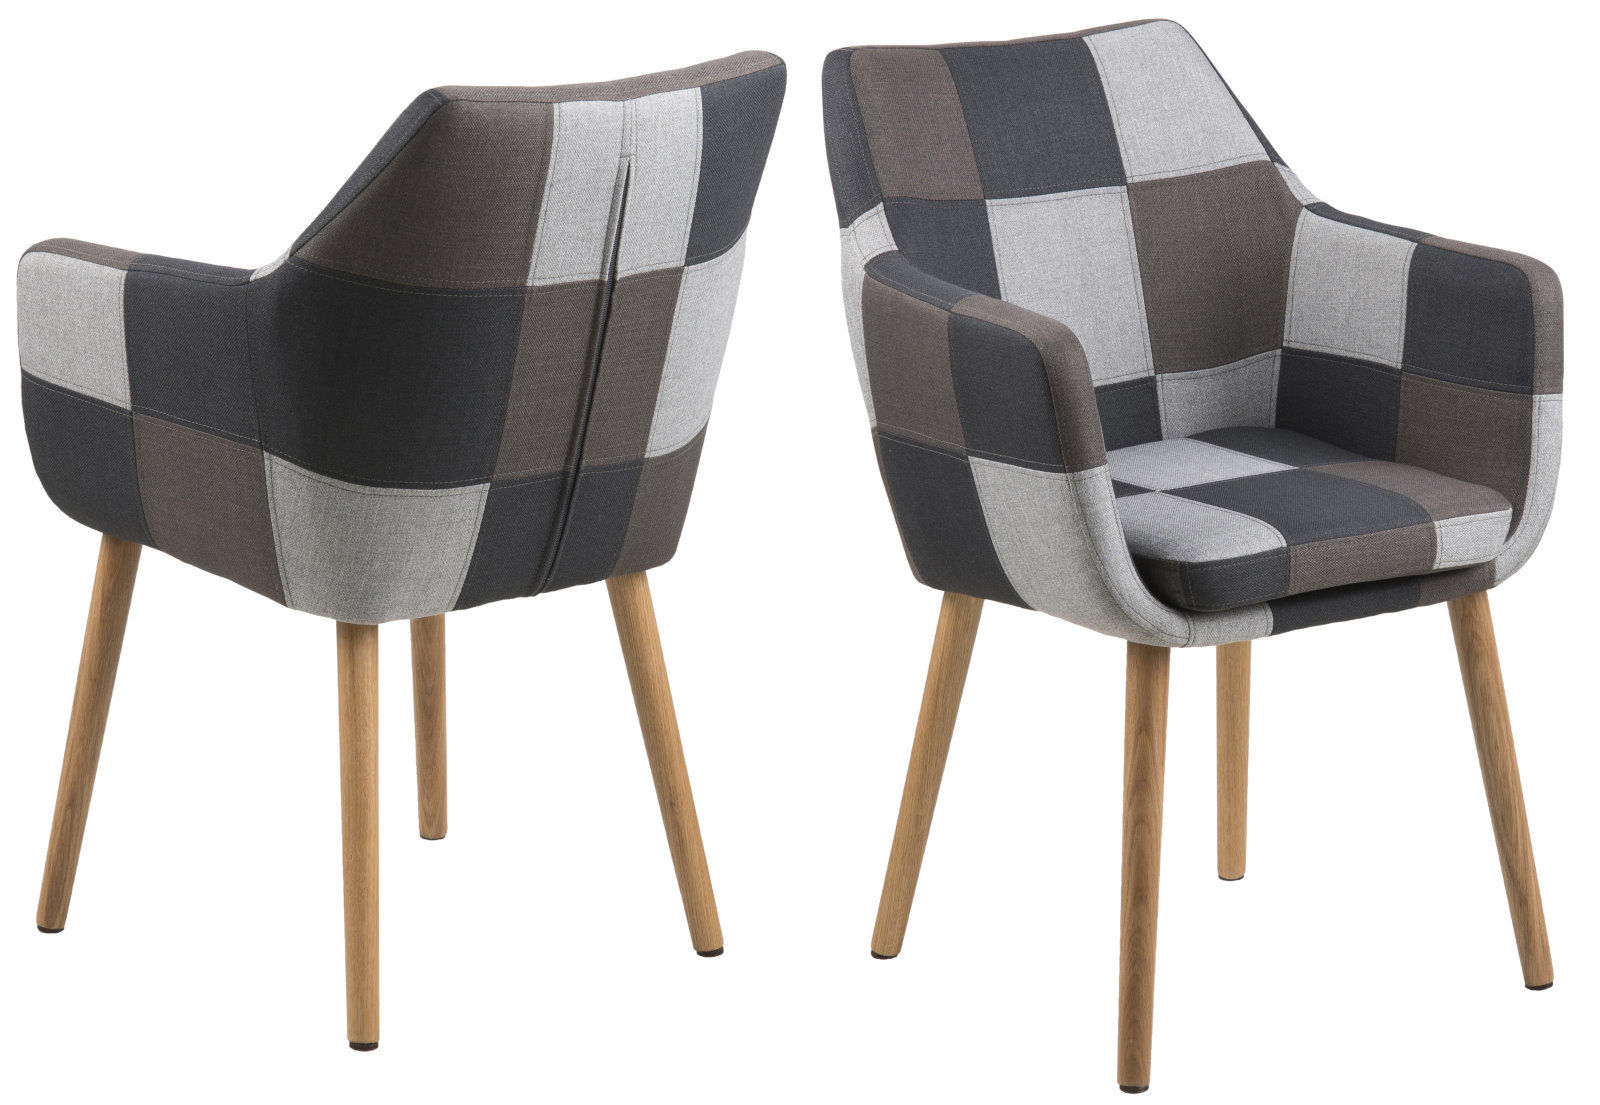 pkline armstuhl in patchwork grau sessel stuhl polsterstuhl armsessel retro ebay. Black Bedroom Furniture Sets. Home Design Ideas